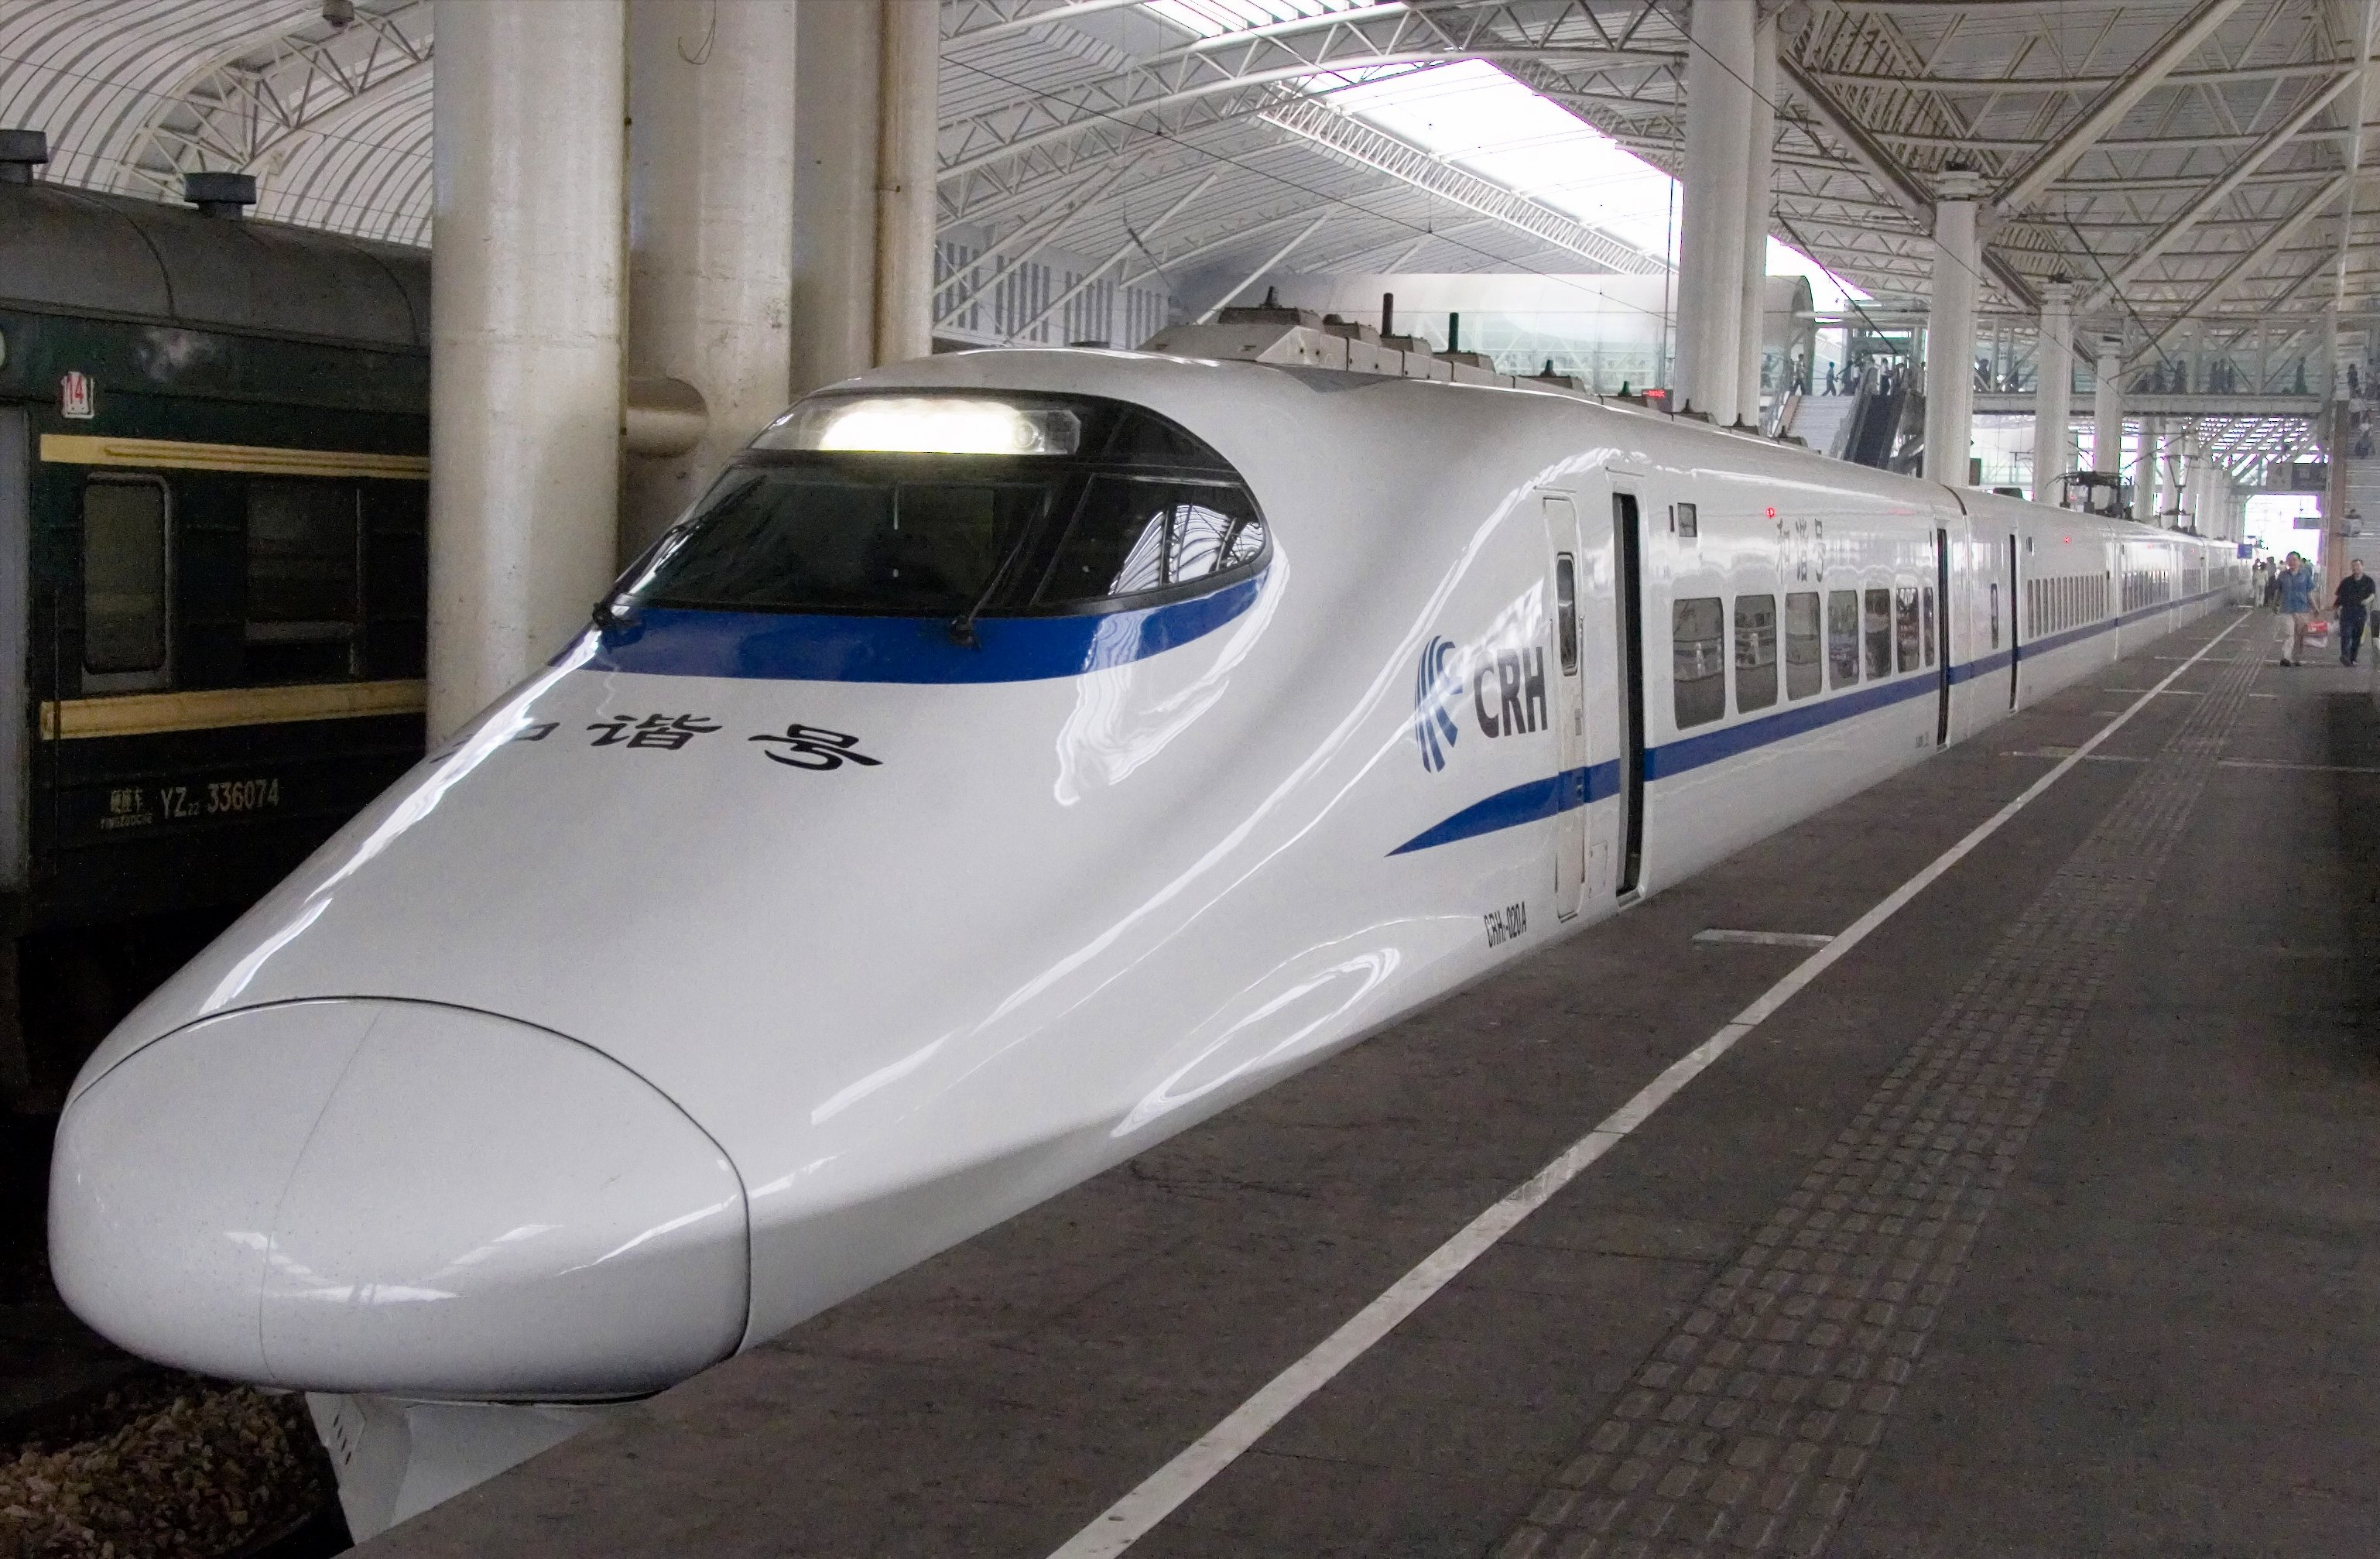 http://upload.wikimedia.org/wikipedia/commons/2/2d/China_railways_CRH2_unit_001.jpg